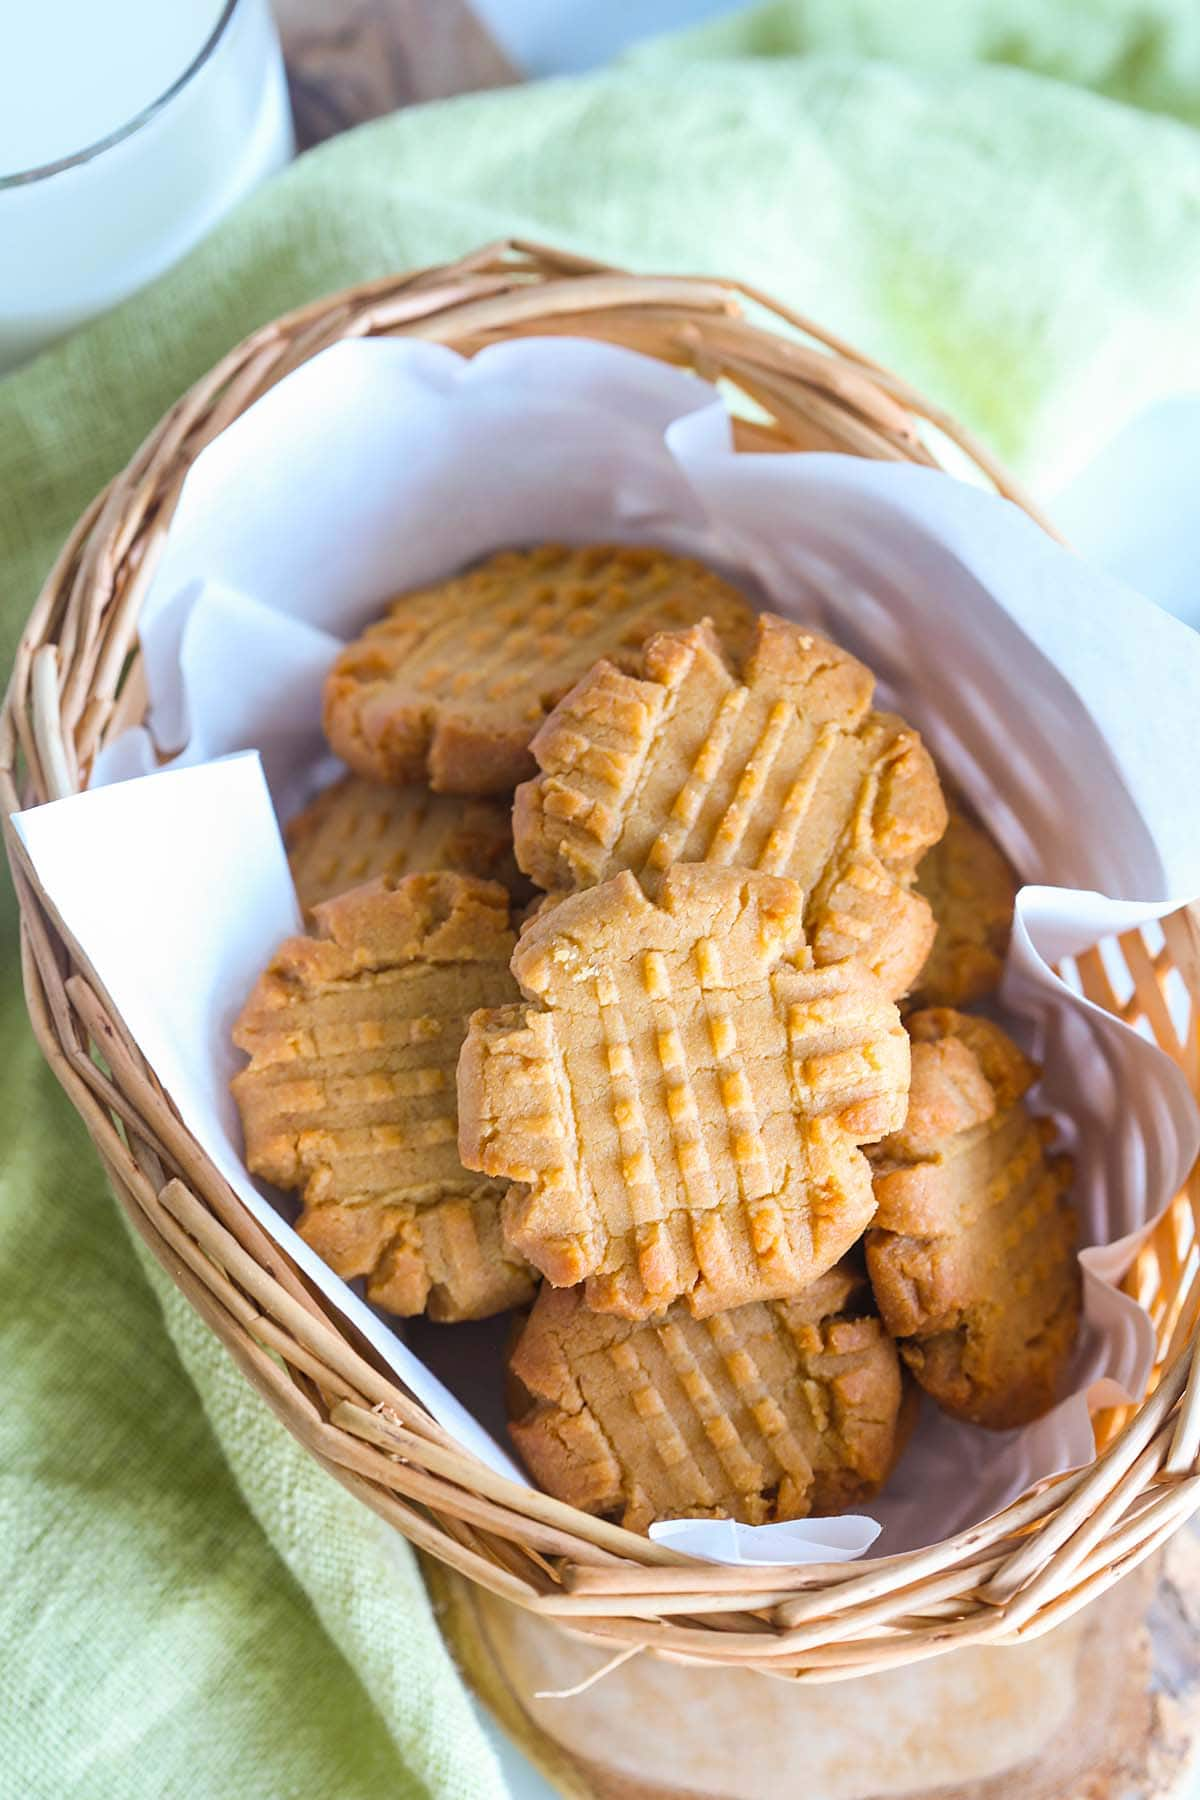 Easy peanut butter cookie recipe with peanut butter, sugar, eggs and flour.